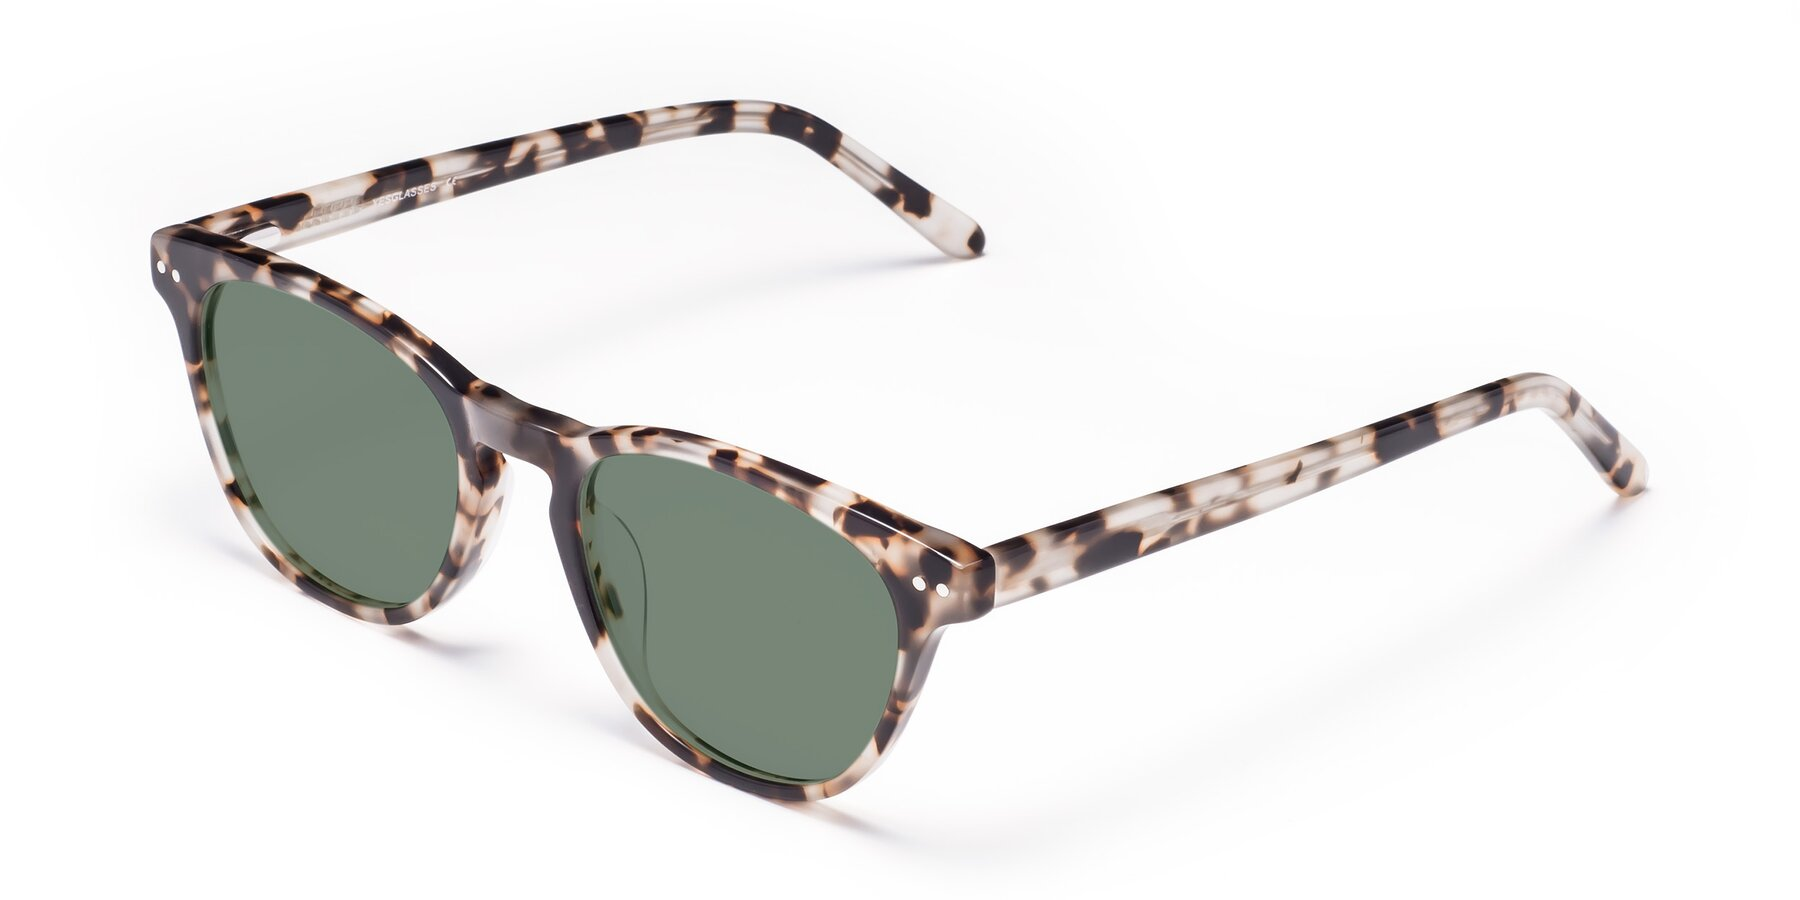 Angle of Blaze in Tortoise with Medium Green Tinted Lenses